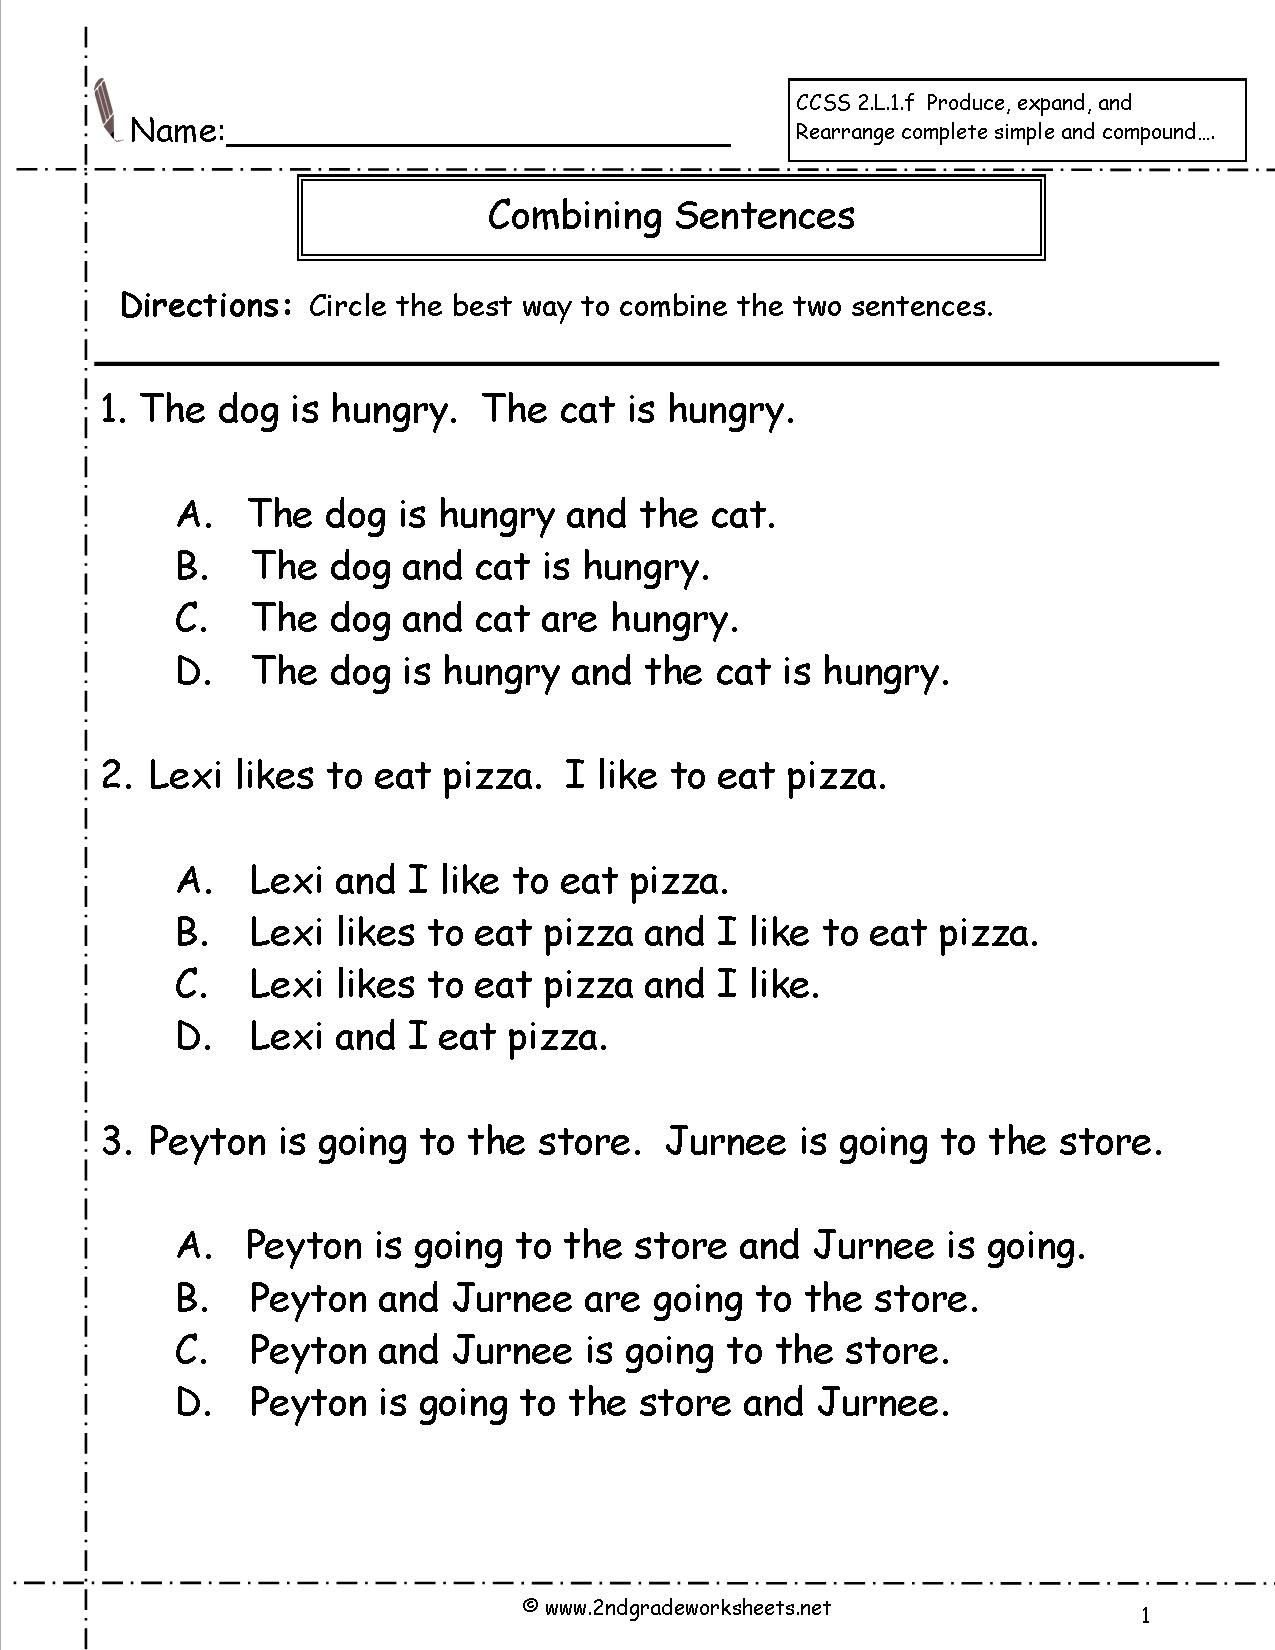 Simple Sentences Worksheet 3rd Grade Bining Sentences Worksheet